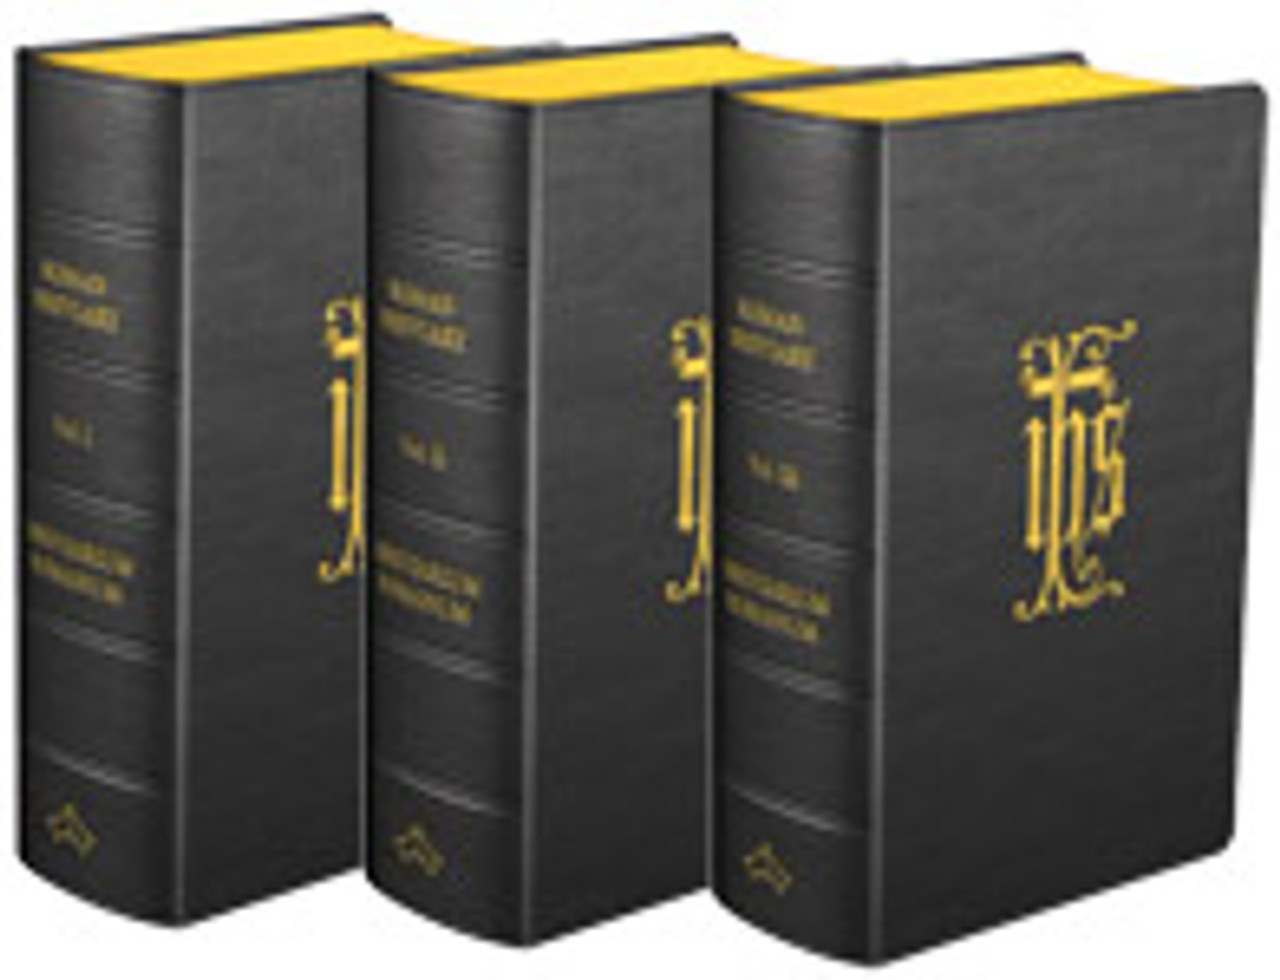 Roman Breviary, The in English and Latin